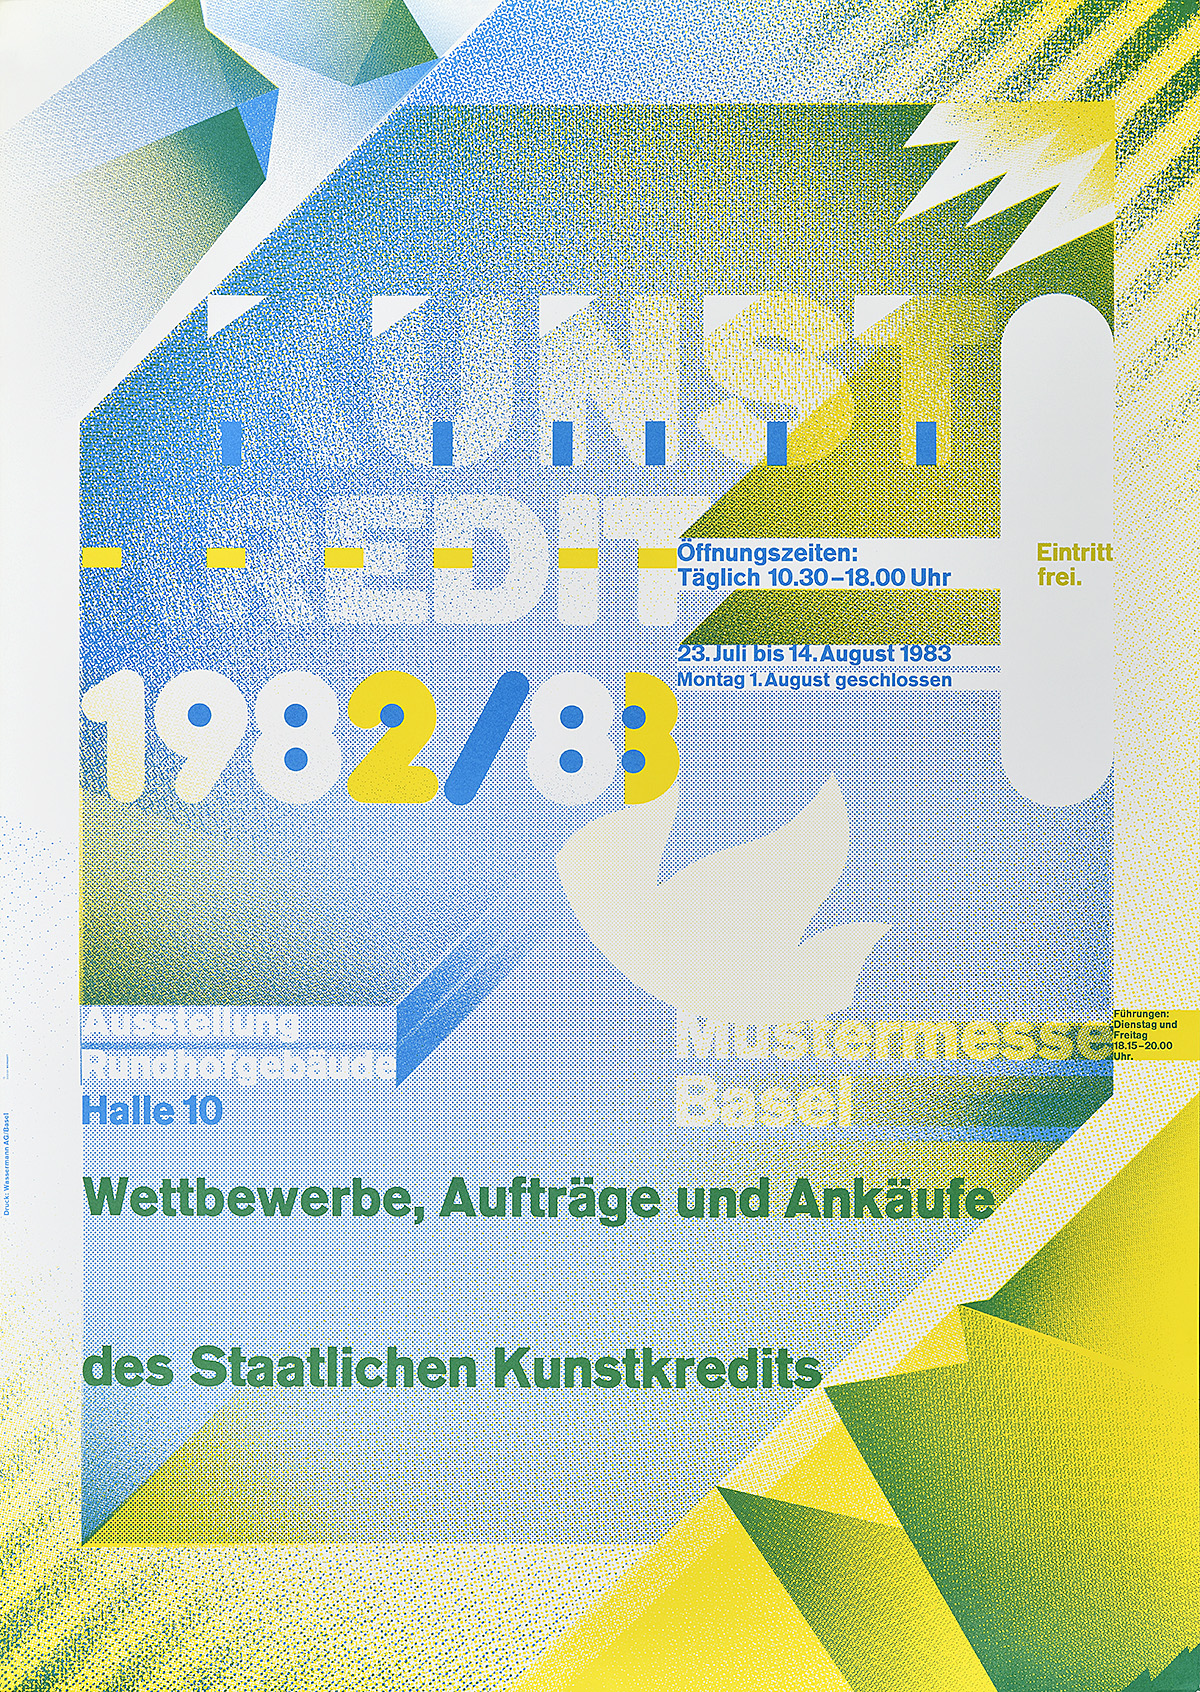 type-based poster with a color gradient of green and blue